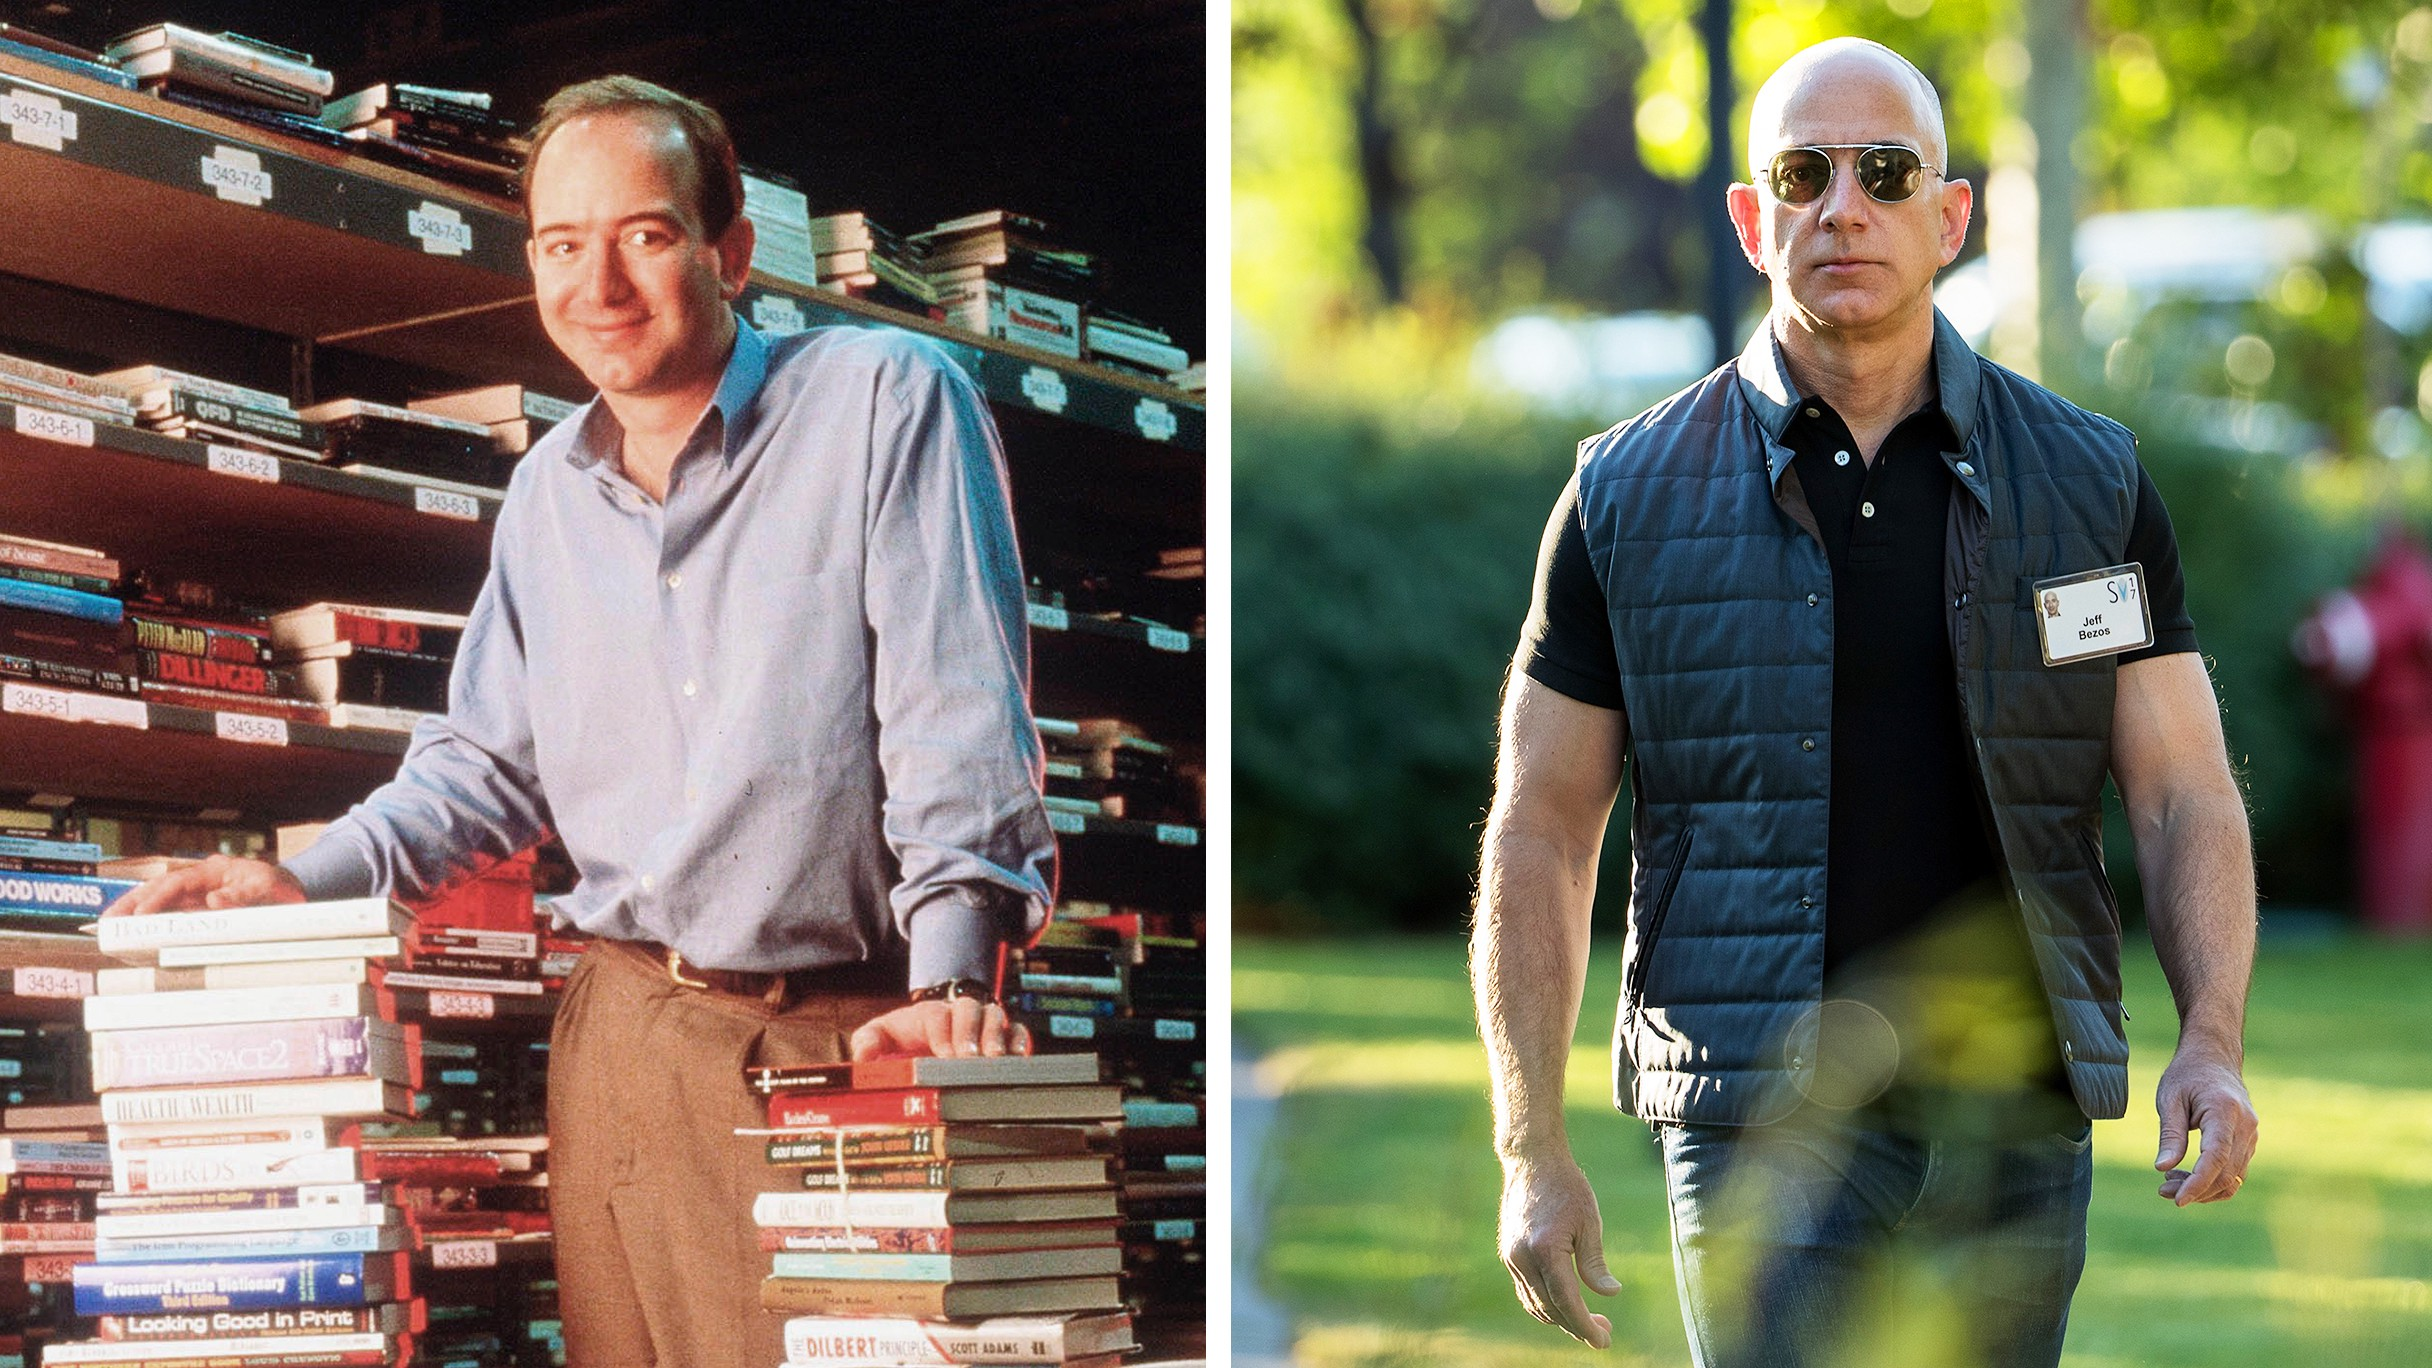 There are six main winning traits that have defined Jeff Bezos and Amazon's success over the last 25 years